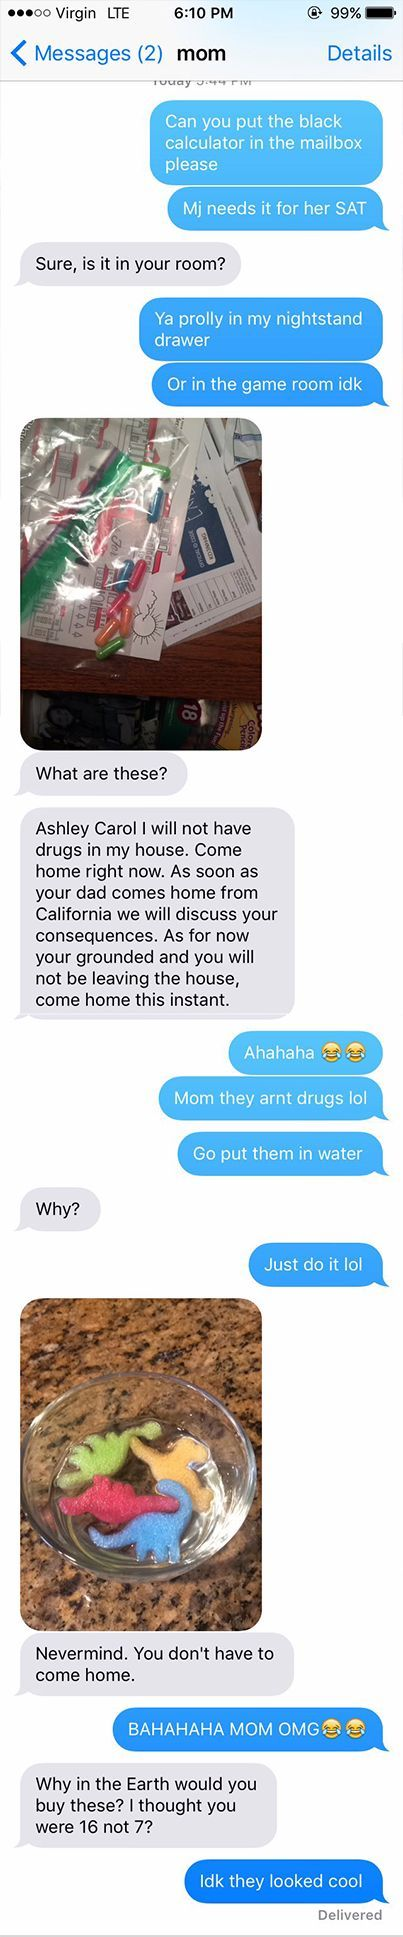 TEXAS — A Texas teenager's Tweets have social media cracking up at what happened when her mom stumbled upon what she thought were drugs in her bedroom. Ashley Banks posted screenshots …